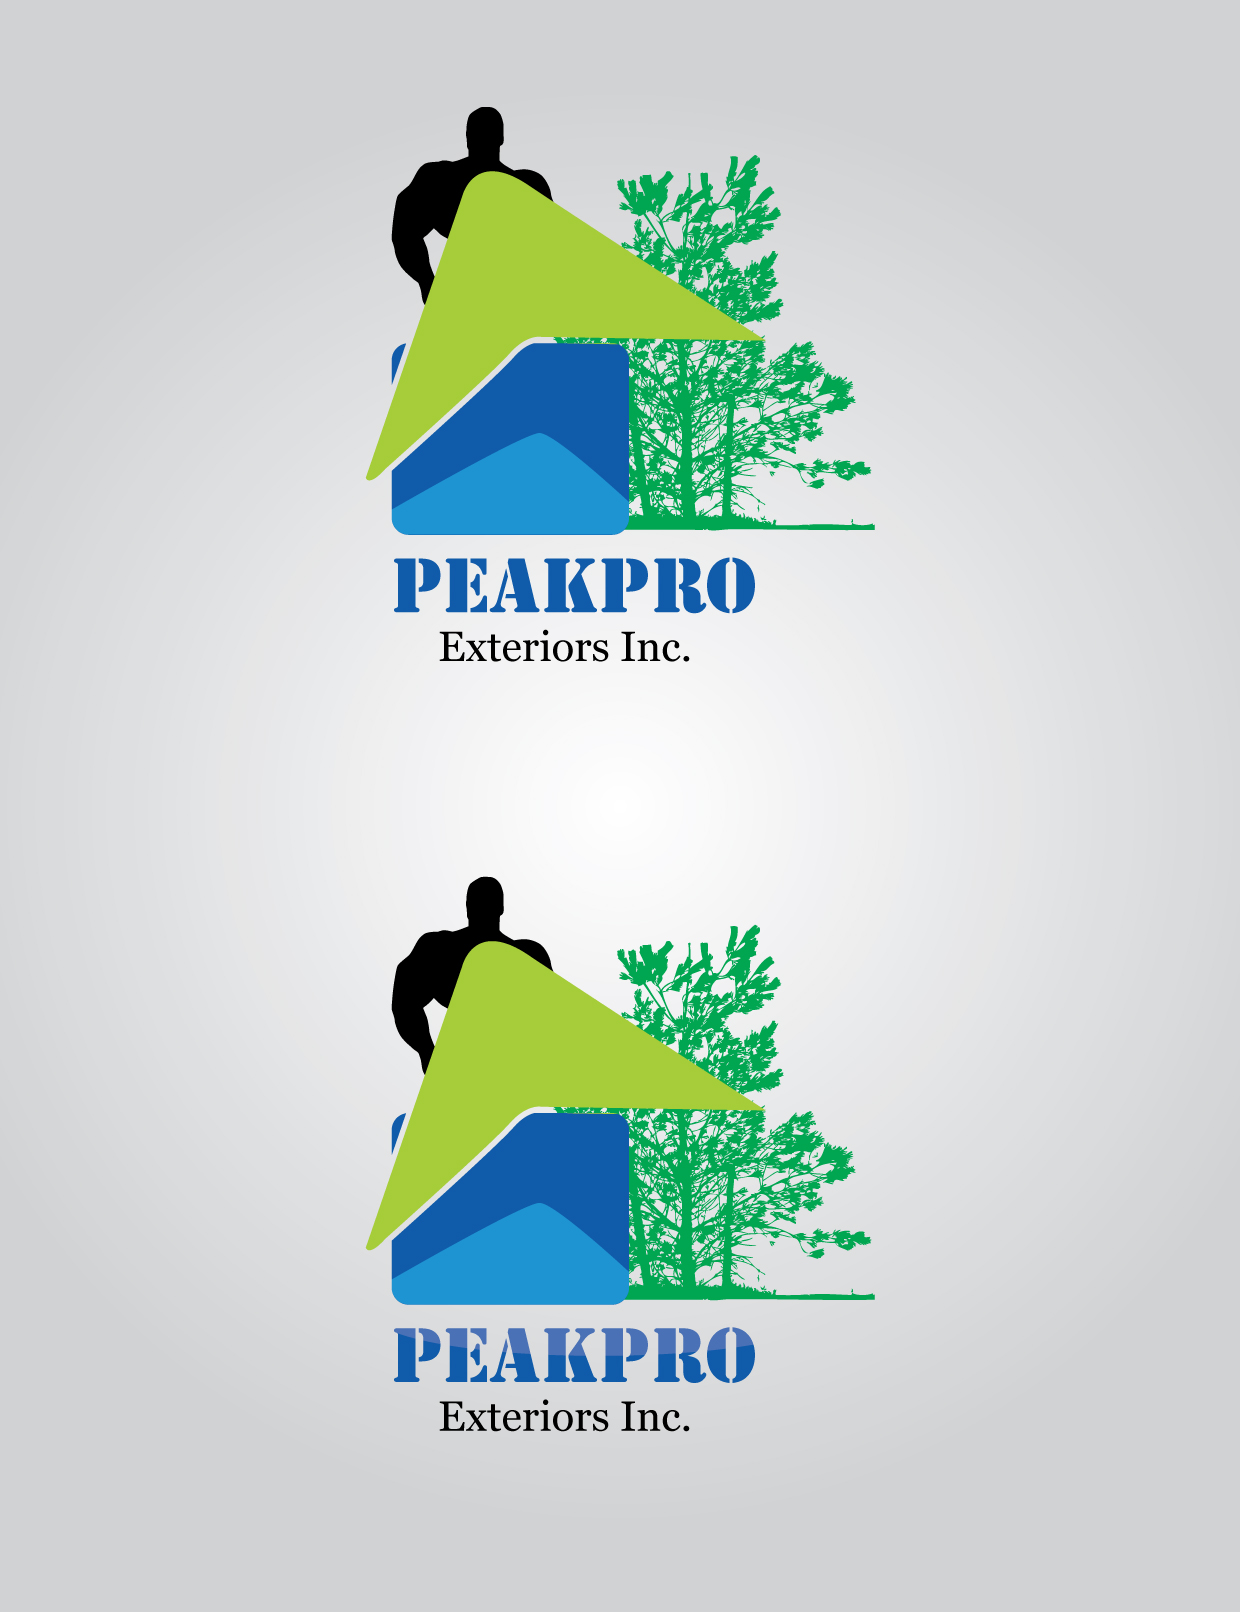 Logo Design by mediaproductionart - Entry No. 83 in the Logo Design Contest Captivating Logo Design for Peakpro Exteriors Inc..